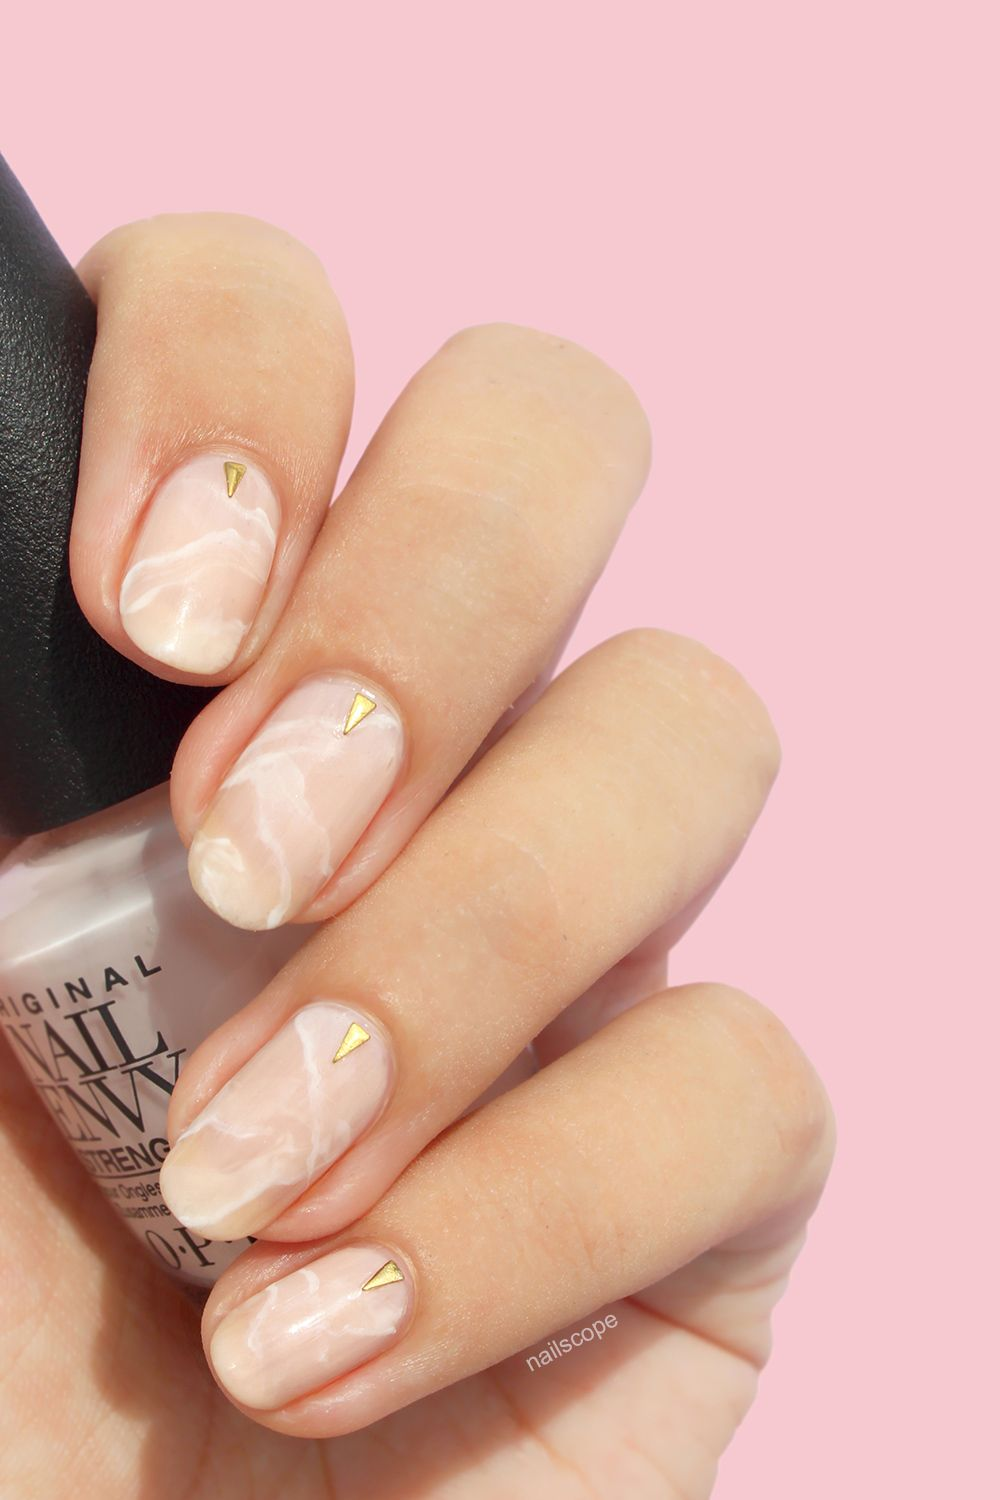 rose quartz nails + tutorial | nailscope | nailscope nails